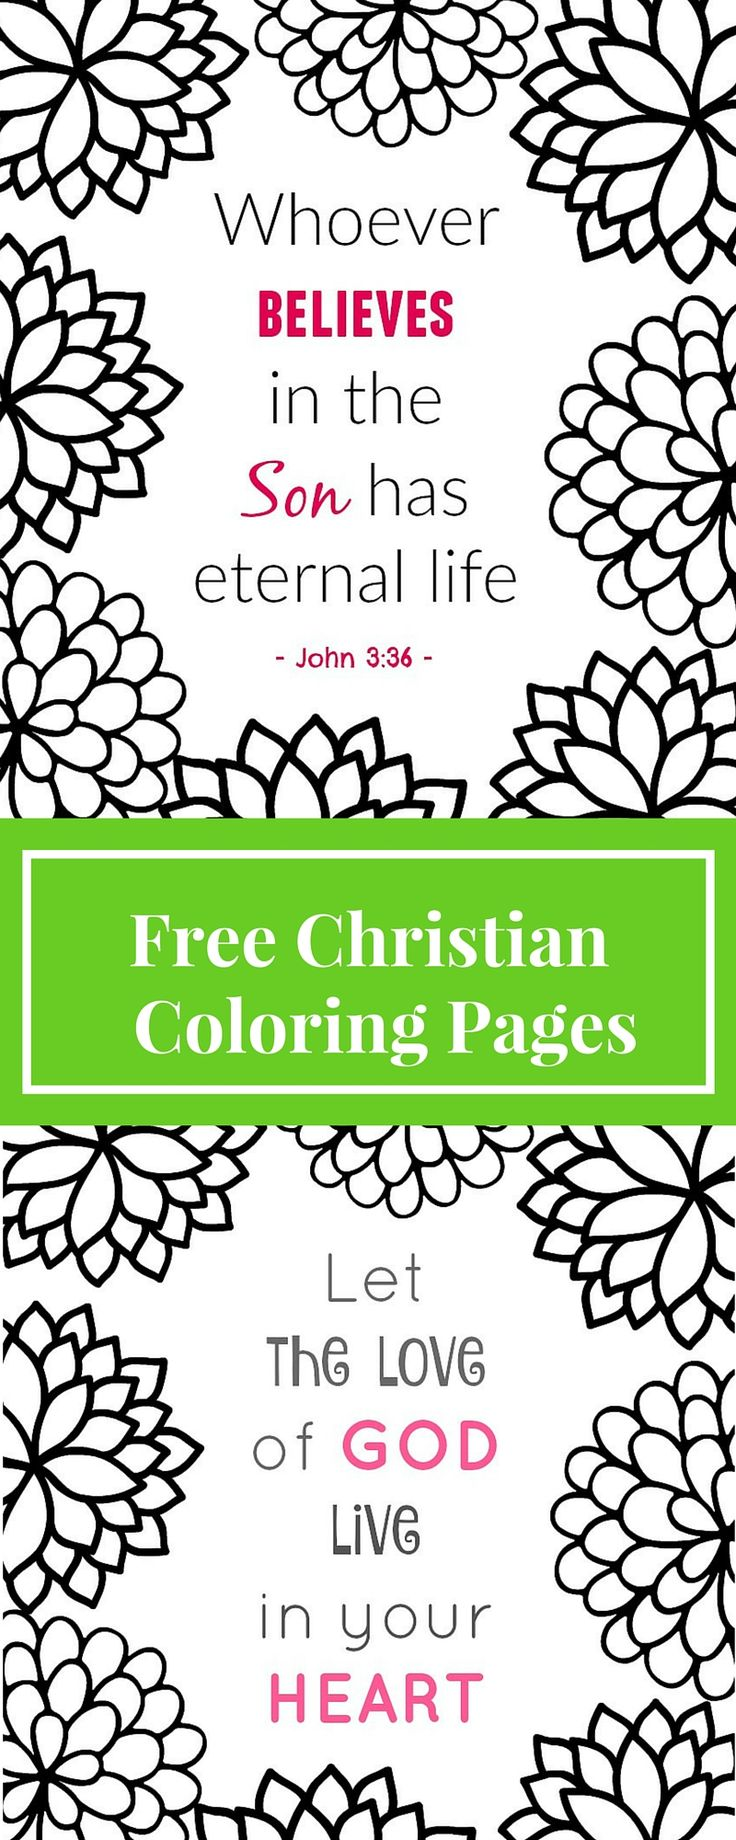 Love coloring pages online - Free Printable Christian Coloring Pages